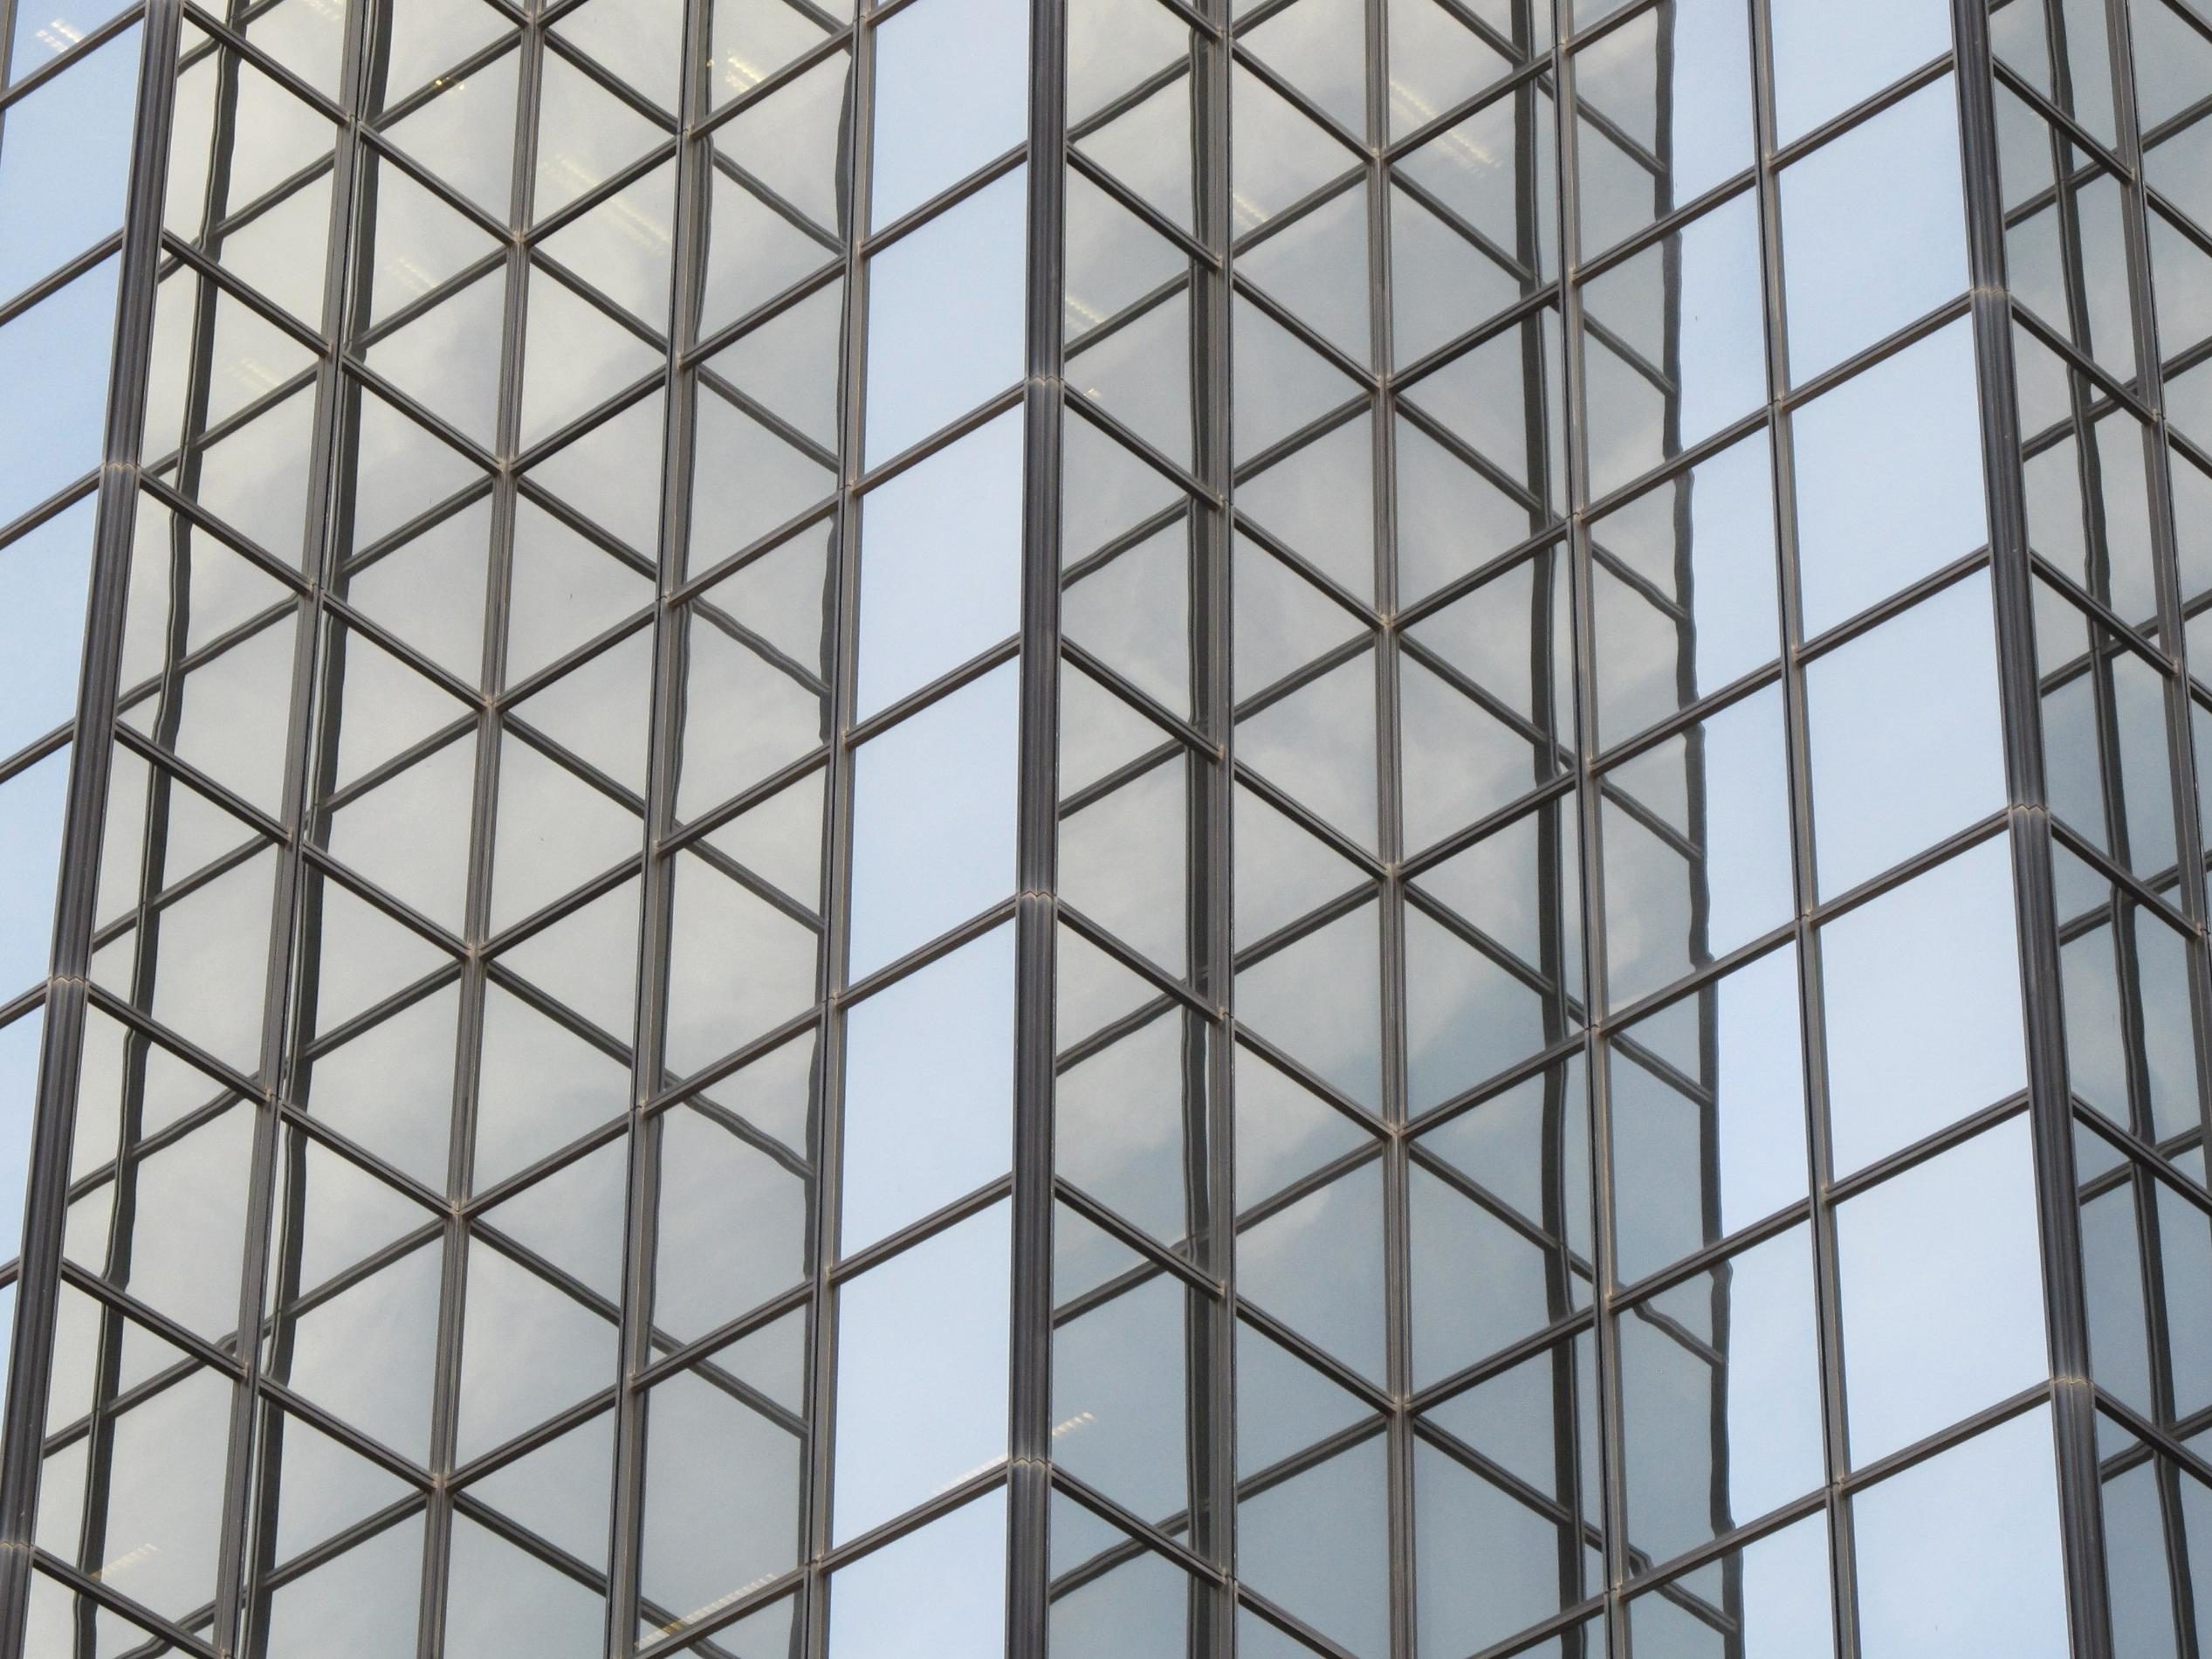 Modern Architecture Pattern free picture: design, steel, pattern, geometric, architecture